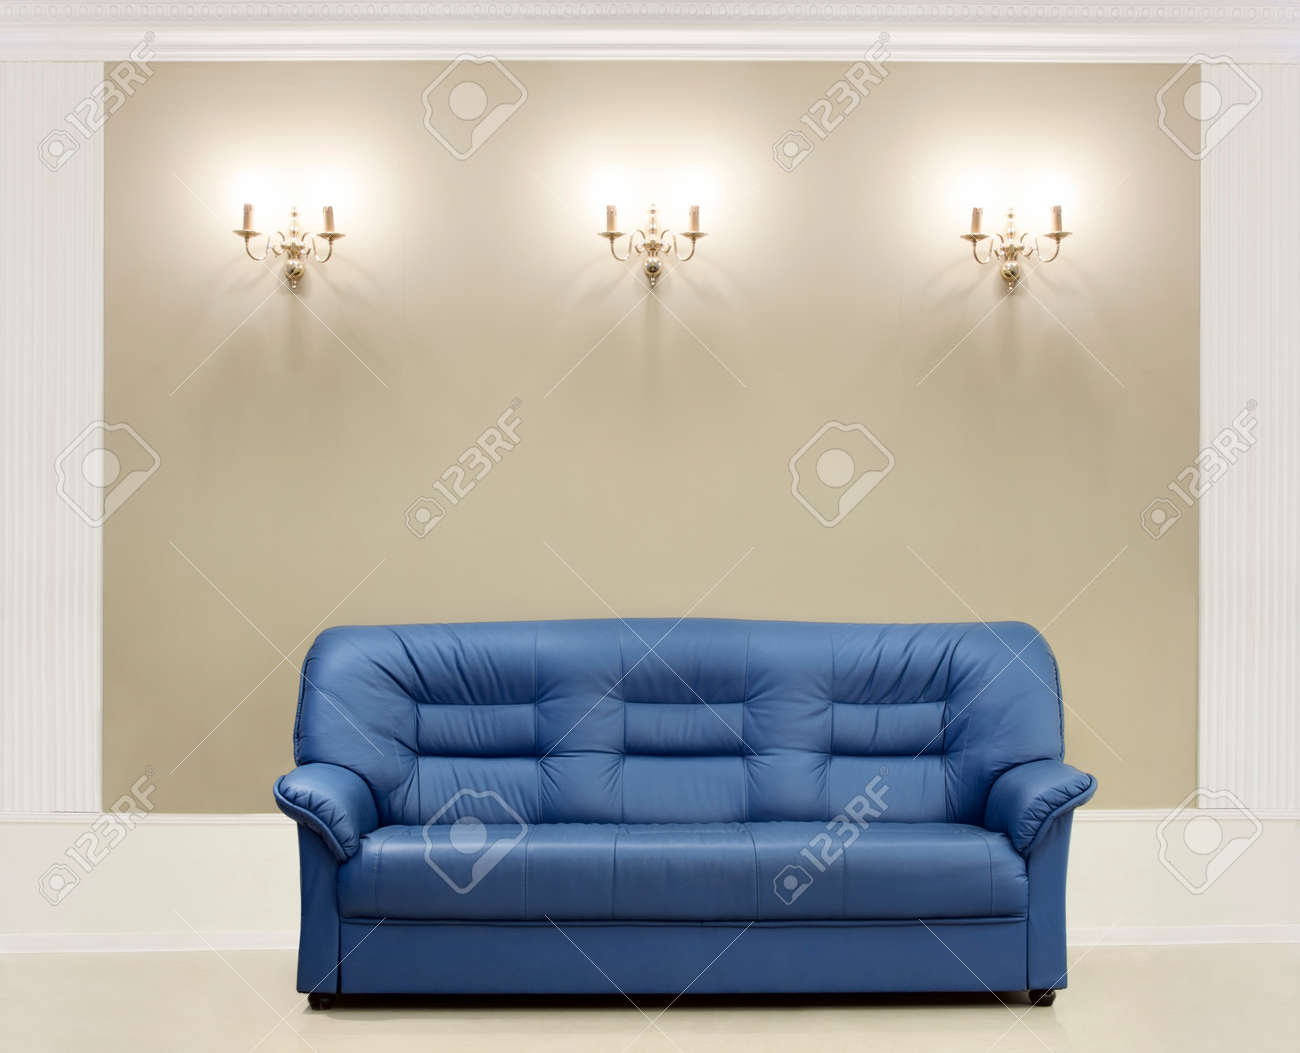 The dark blue leather sofa, is put about a wall with candelabrums